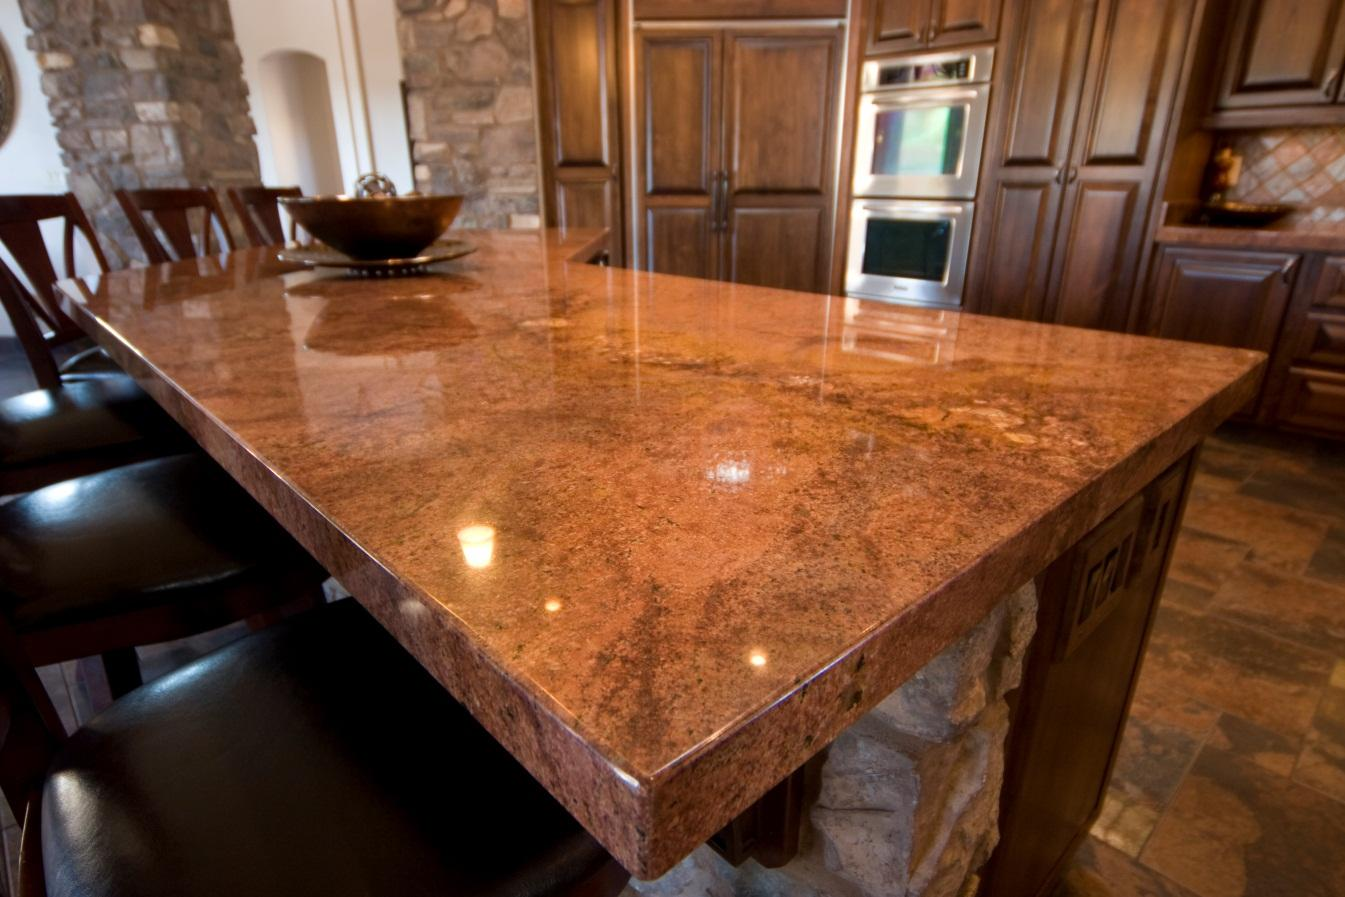 Superieur Choice Between Granite And Engineered Stone